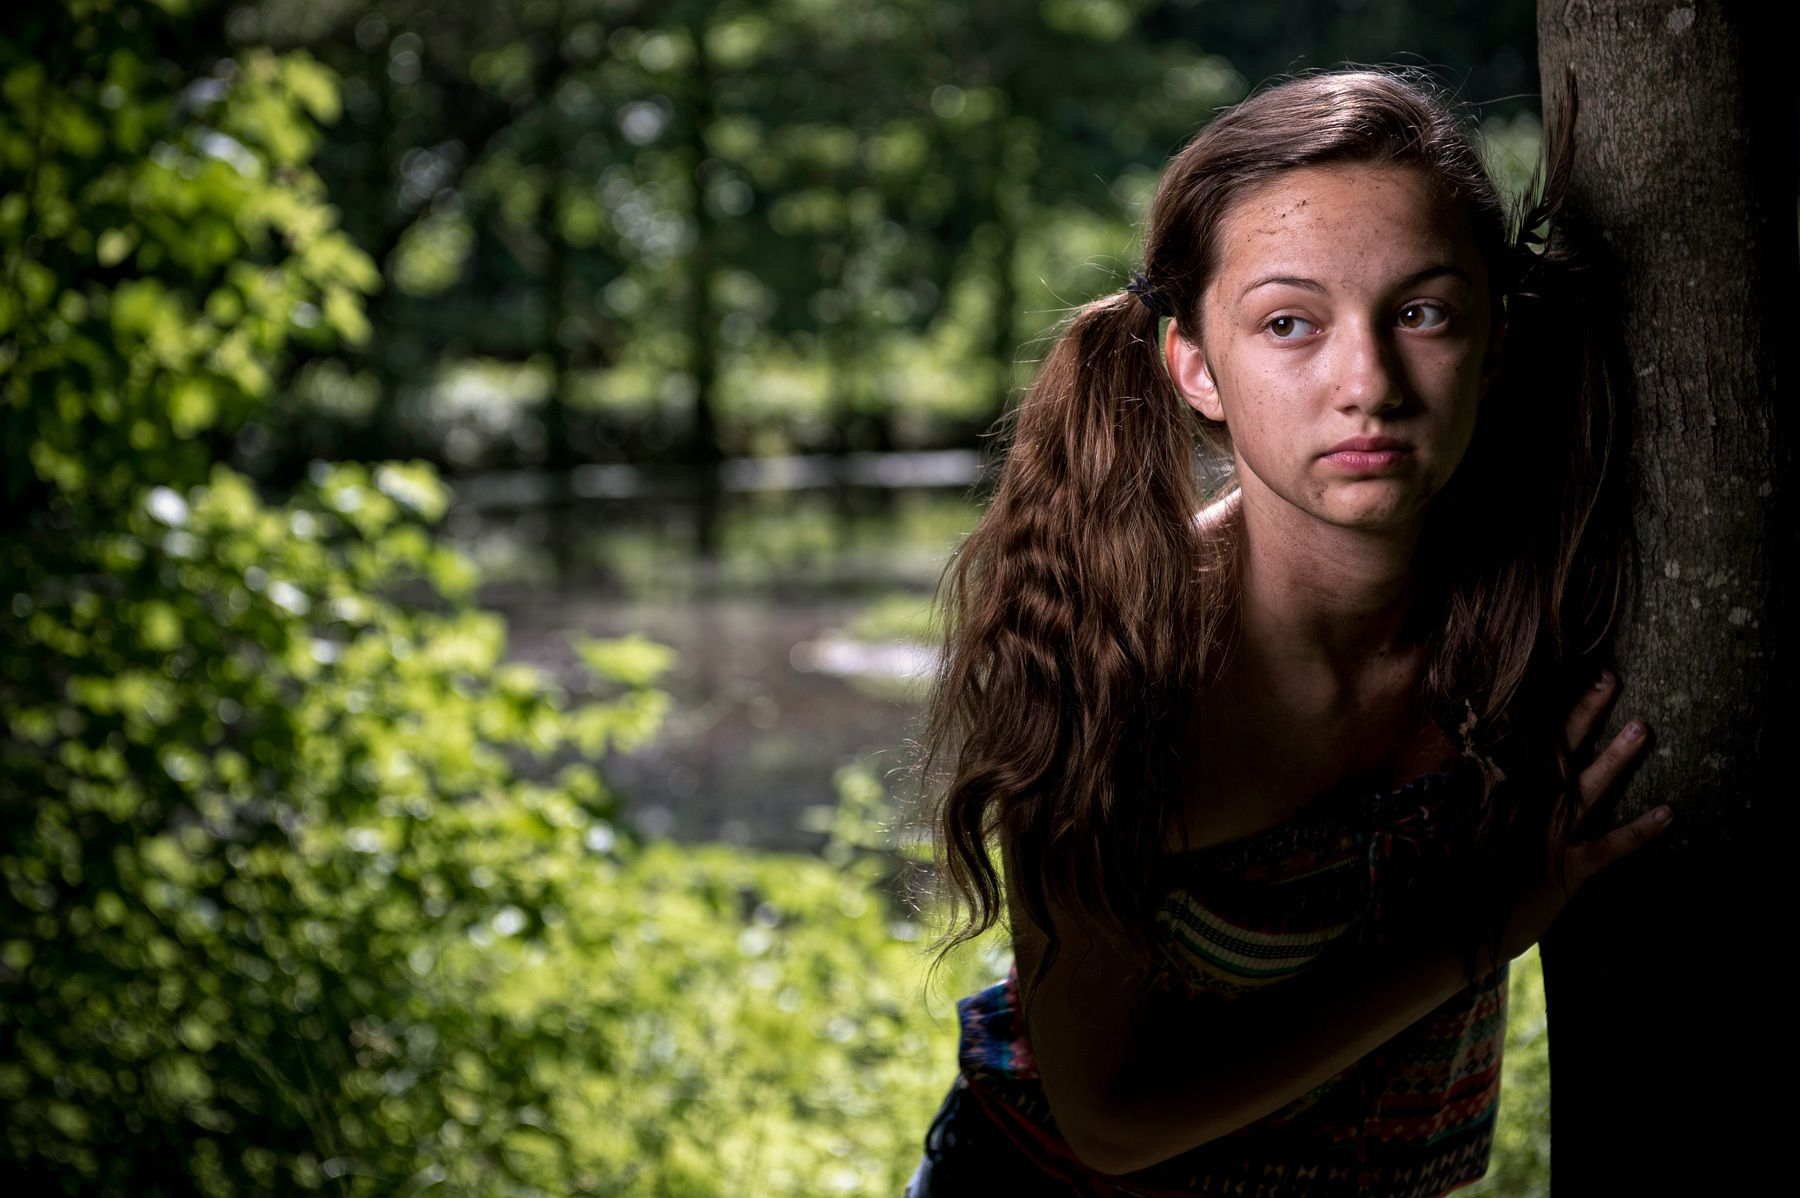 1hunting_and_gathering_young_native_american_searching_dsc1549